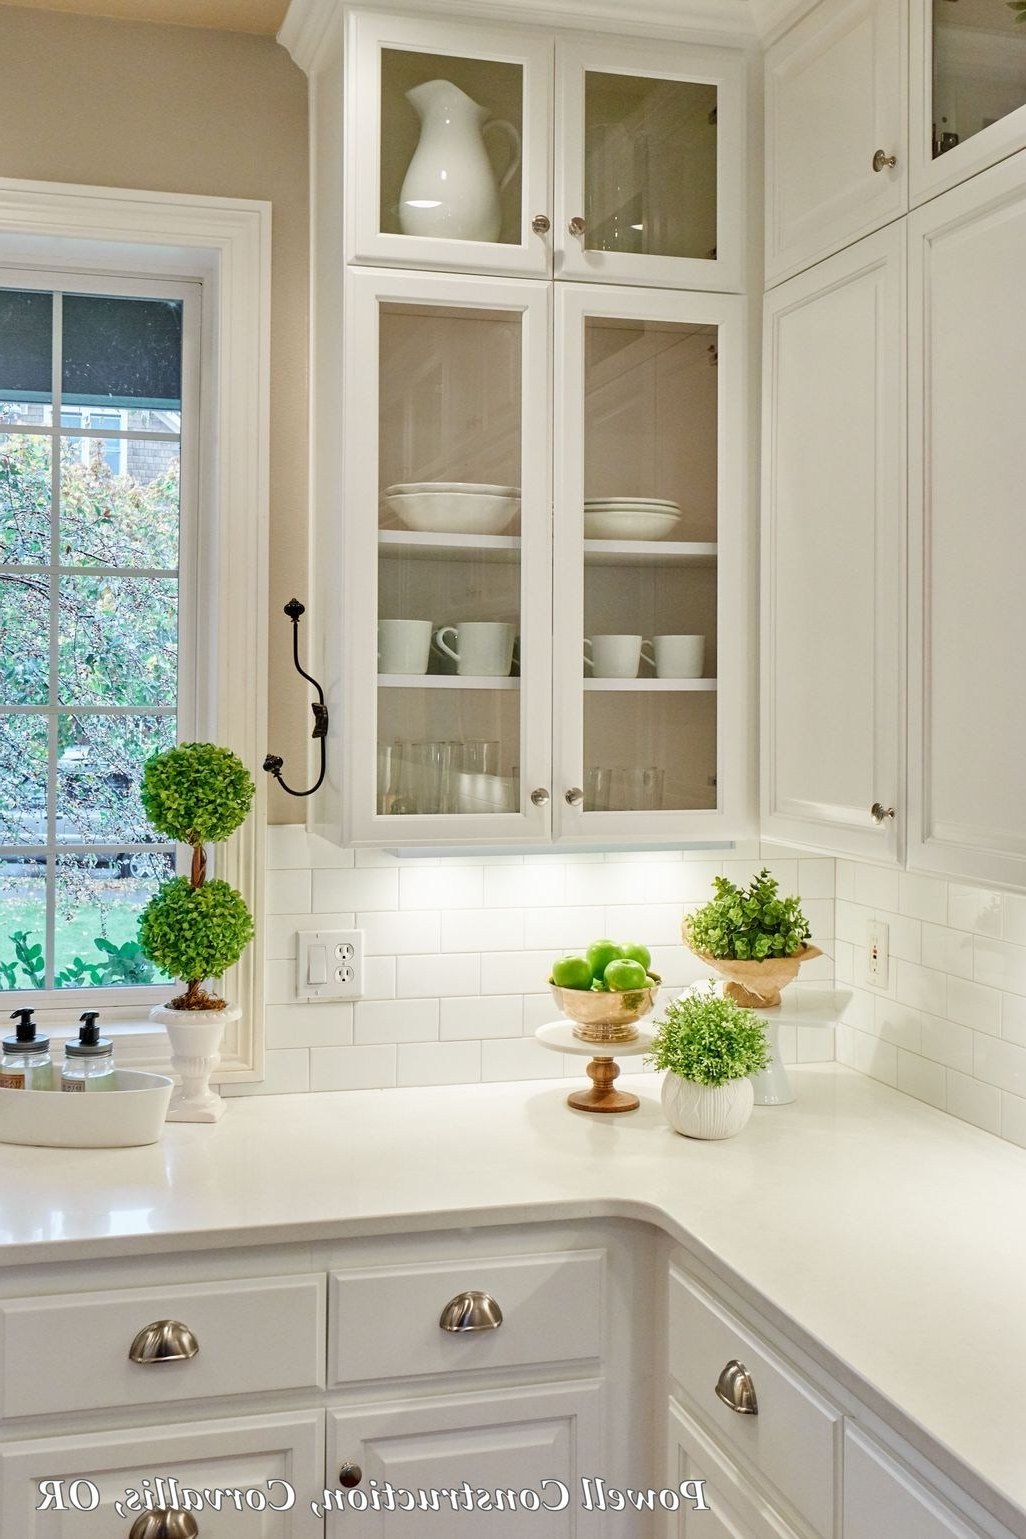 43 Awesome White Kitchen Backsplash Design Ideas